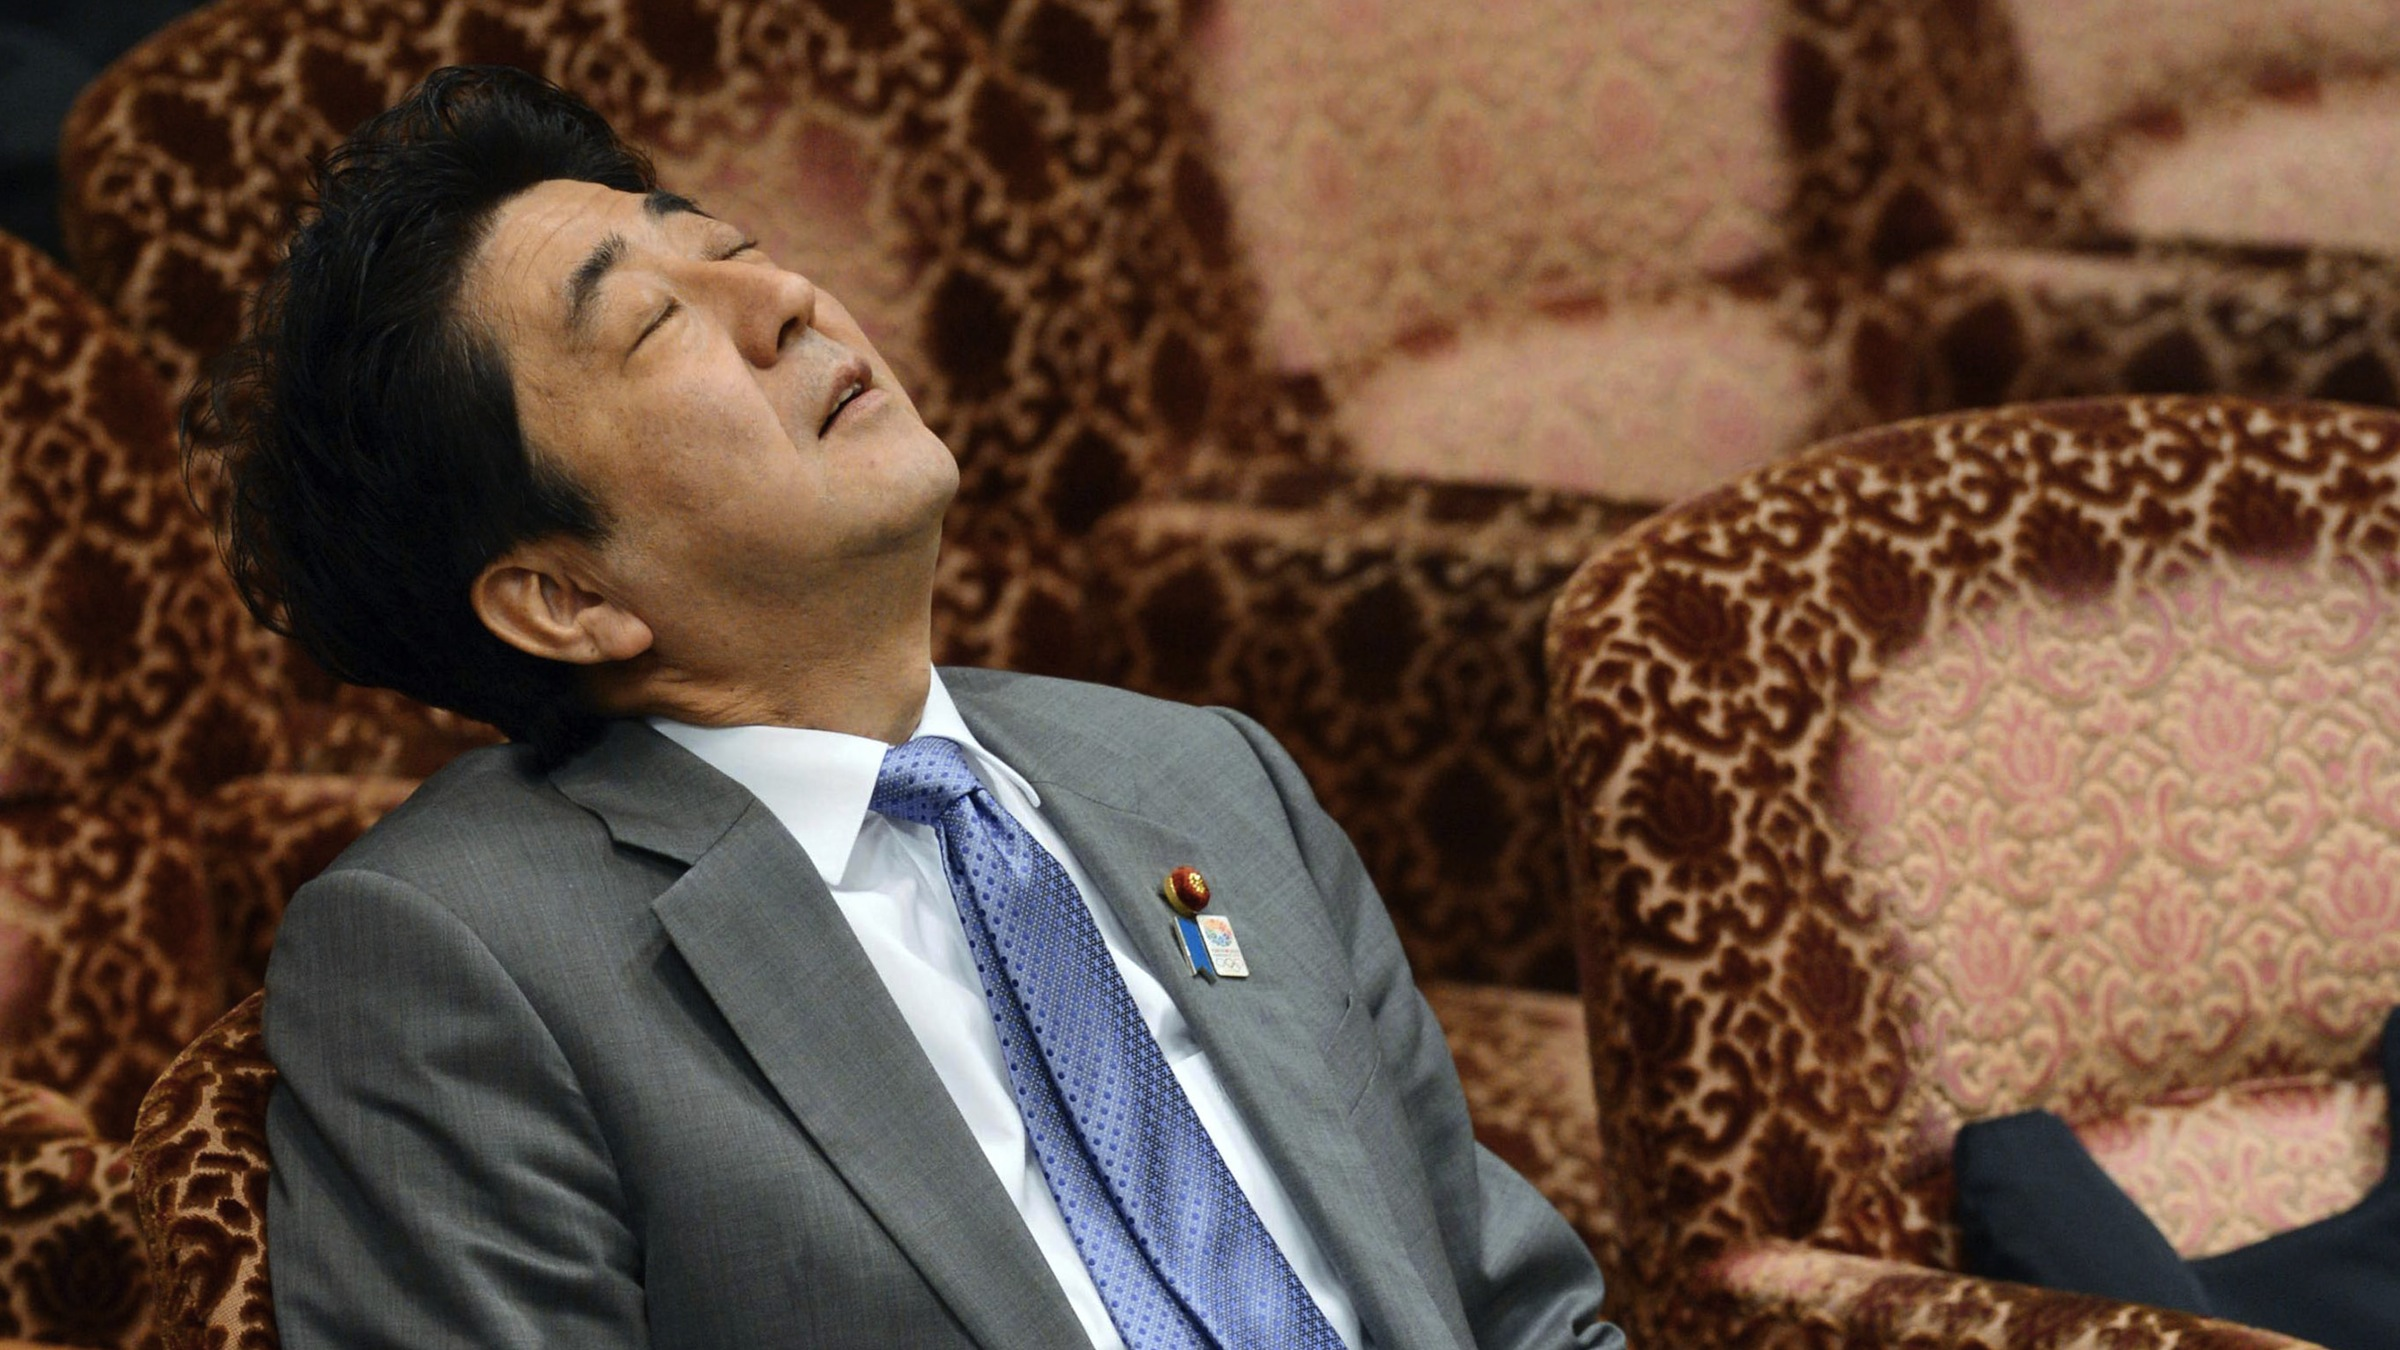 Japan's Prime Minister Shinzo Abe waits for the start of the Upper House Budget Committee in Tokyo Wednesday, May 8, 2013.  (AP Photo/Kyodo News) JAPAN OUT, MANDATORY CREDIT